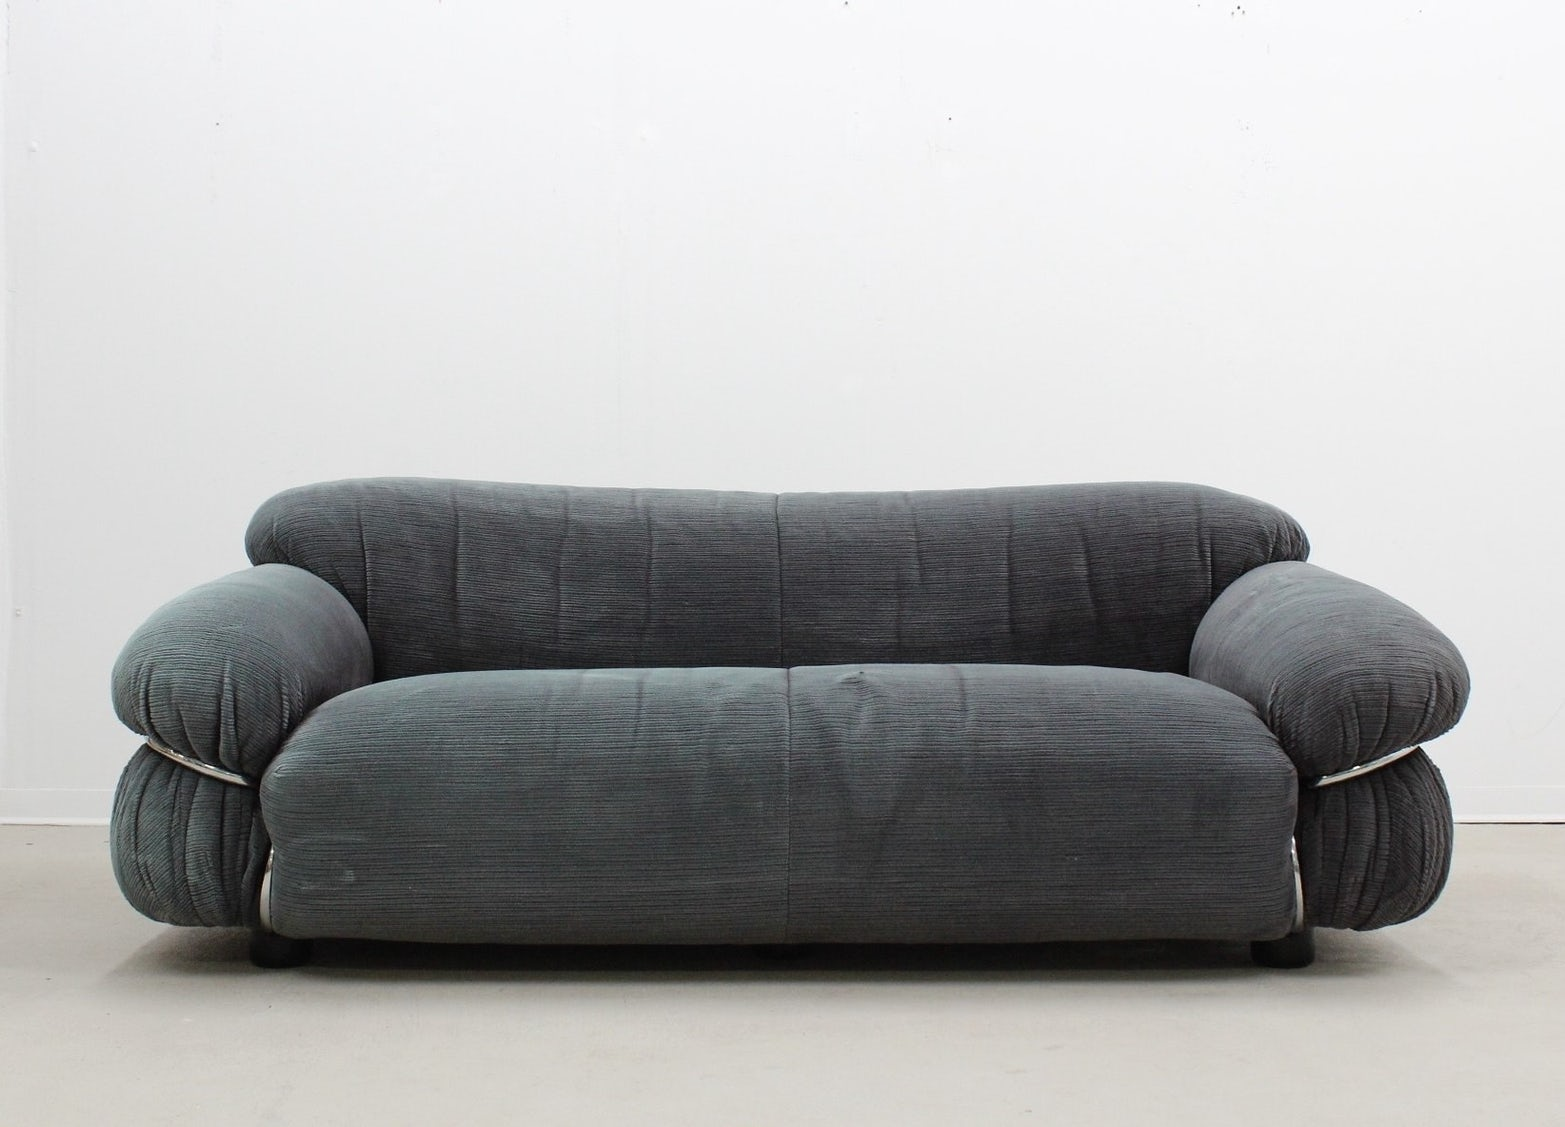 Sesann Sofa By Gianfranco Frattini For Cassina 1970S